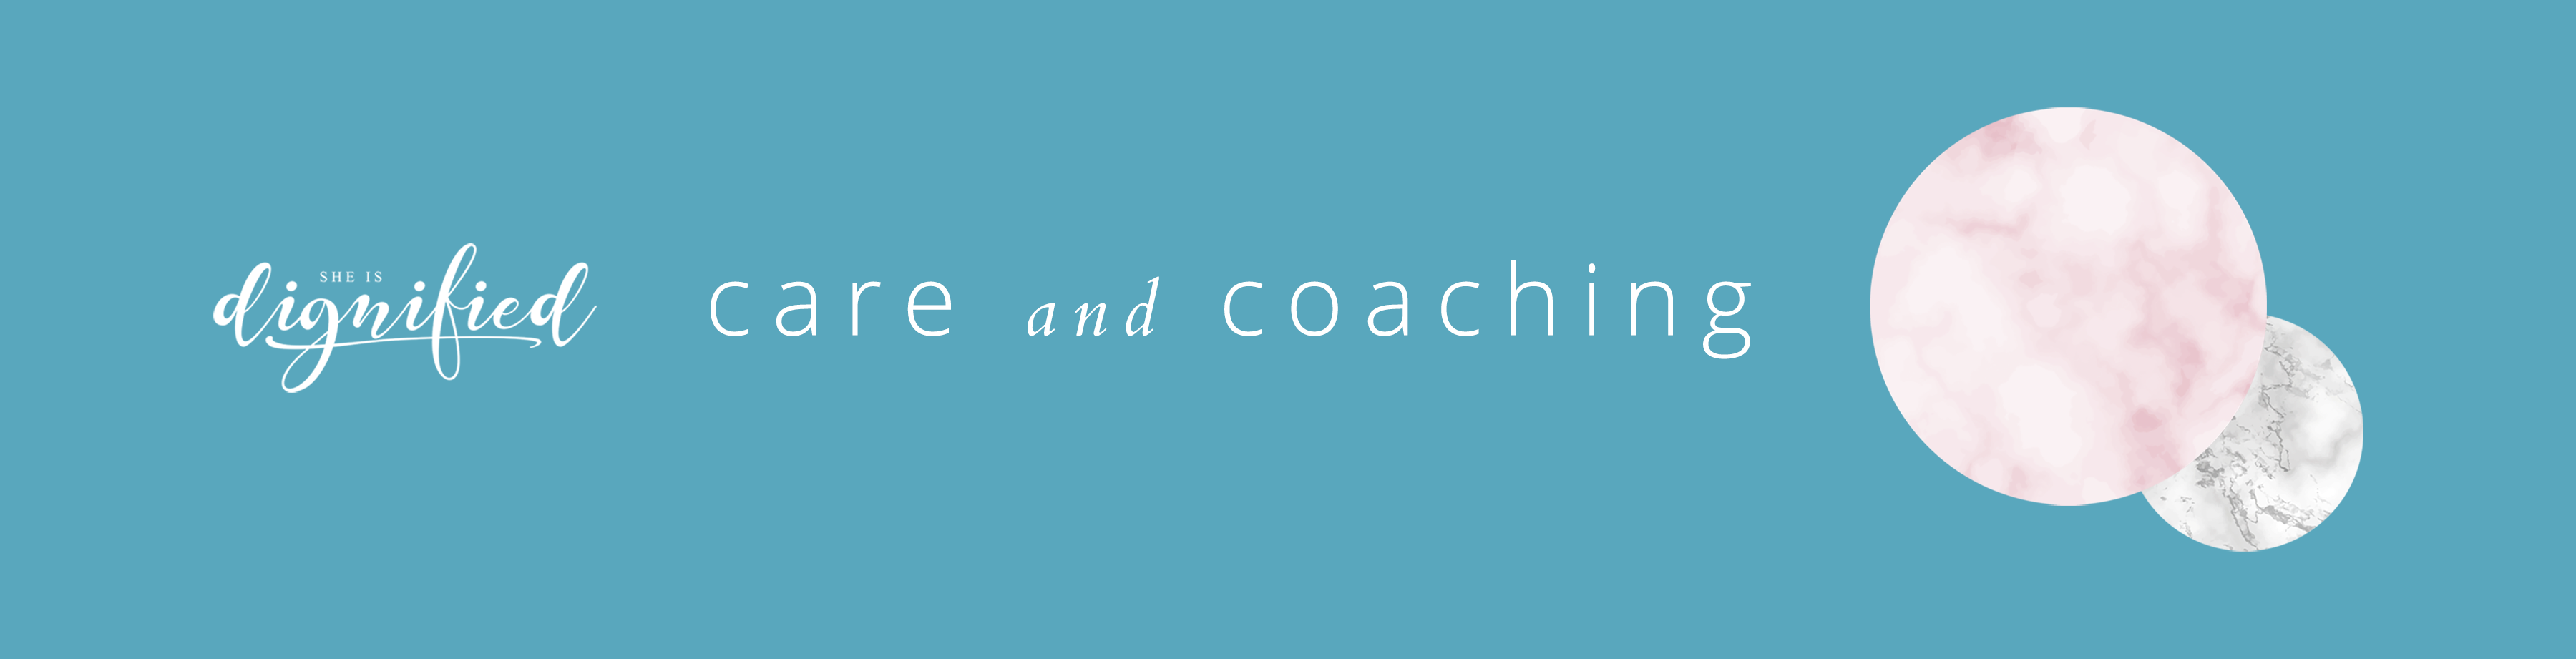 care and coaching webslide2